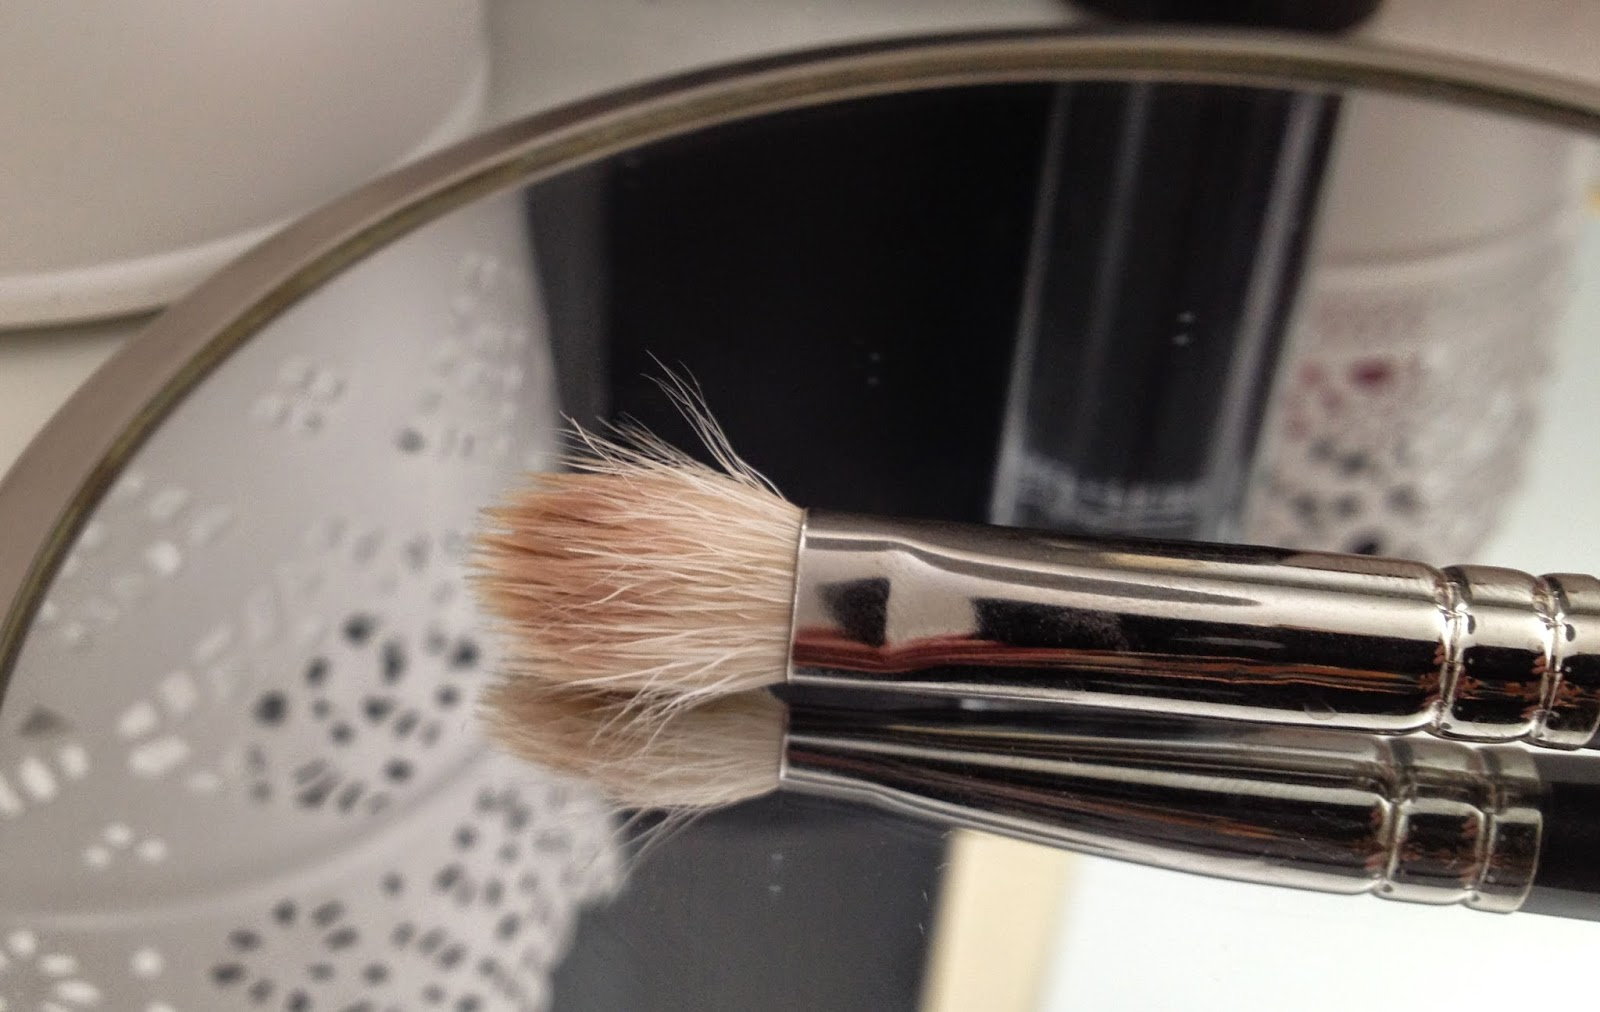 MAC 217 eyeshadow Blending Brush